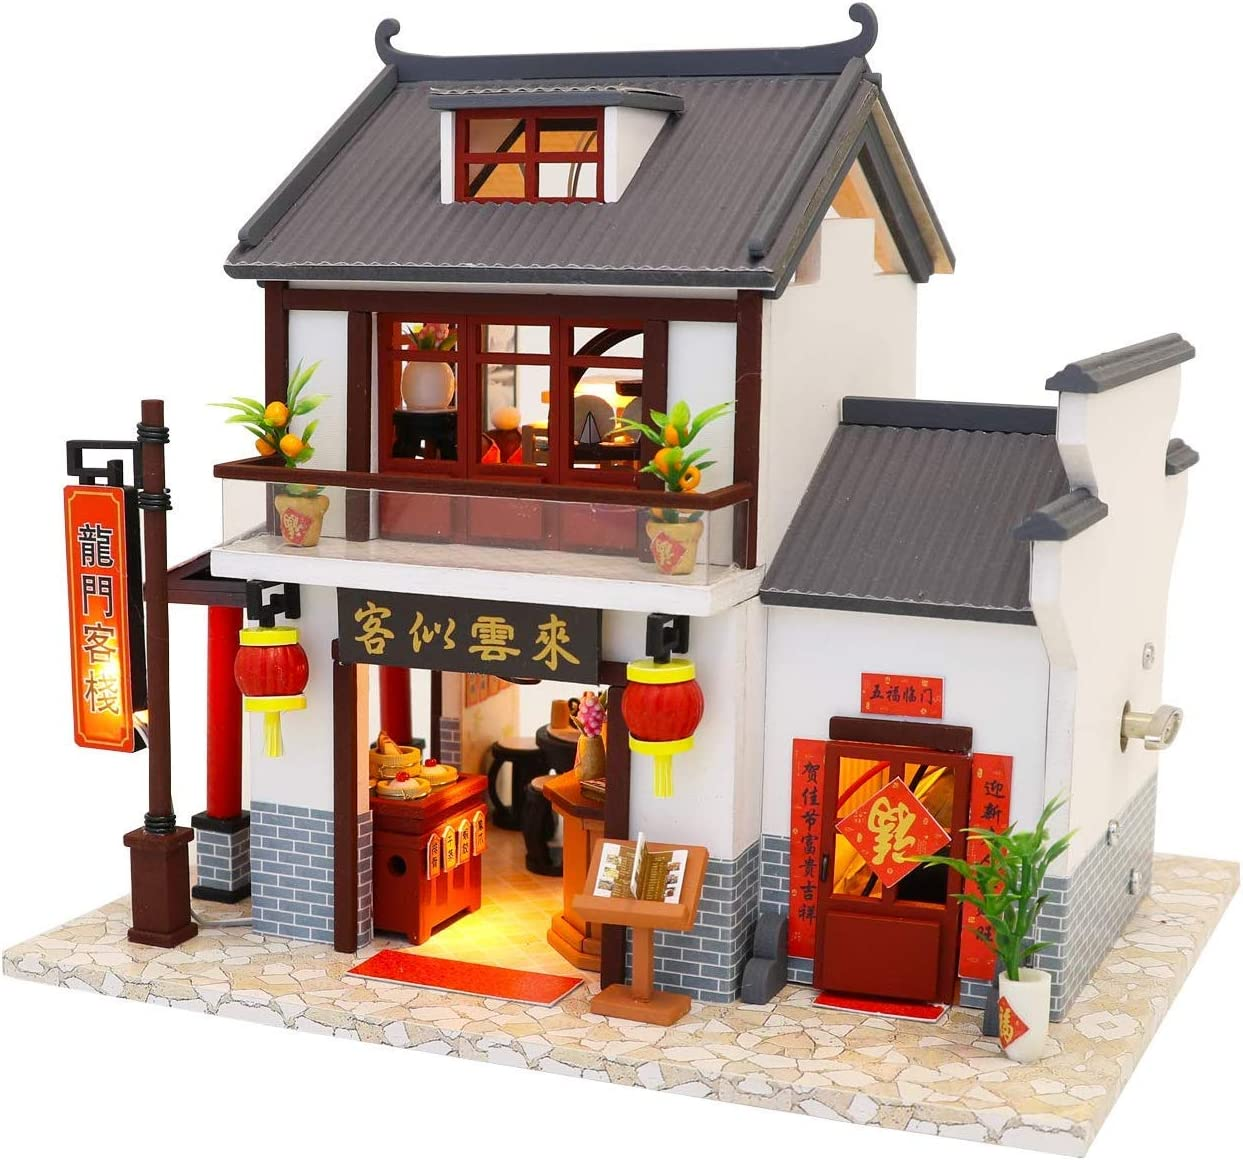 Flever Wooden DIY Fashionable Dollhouse Kit 1:24 Ranking TOP8 Miniature Scale Furni with